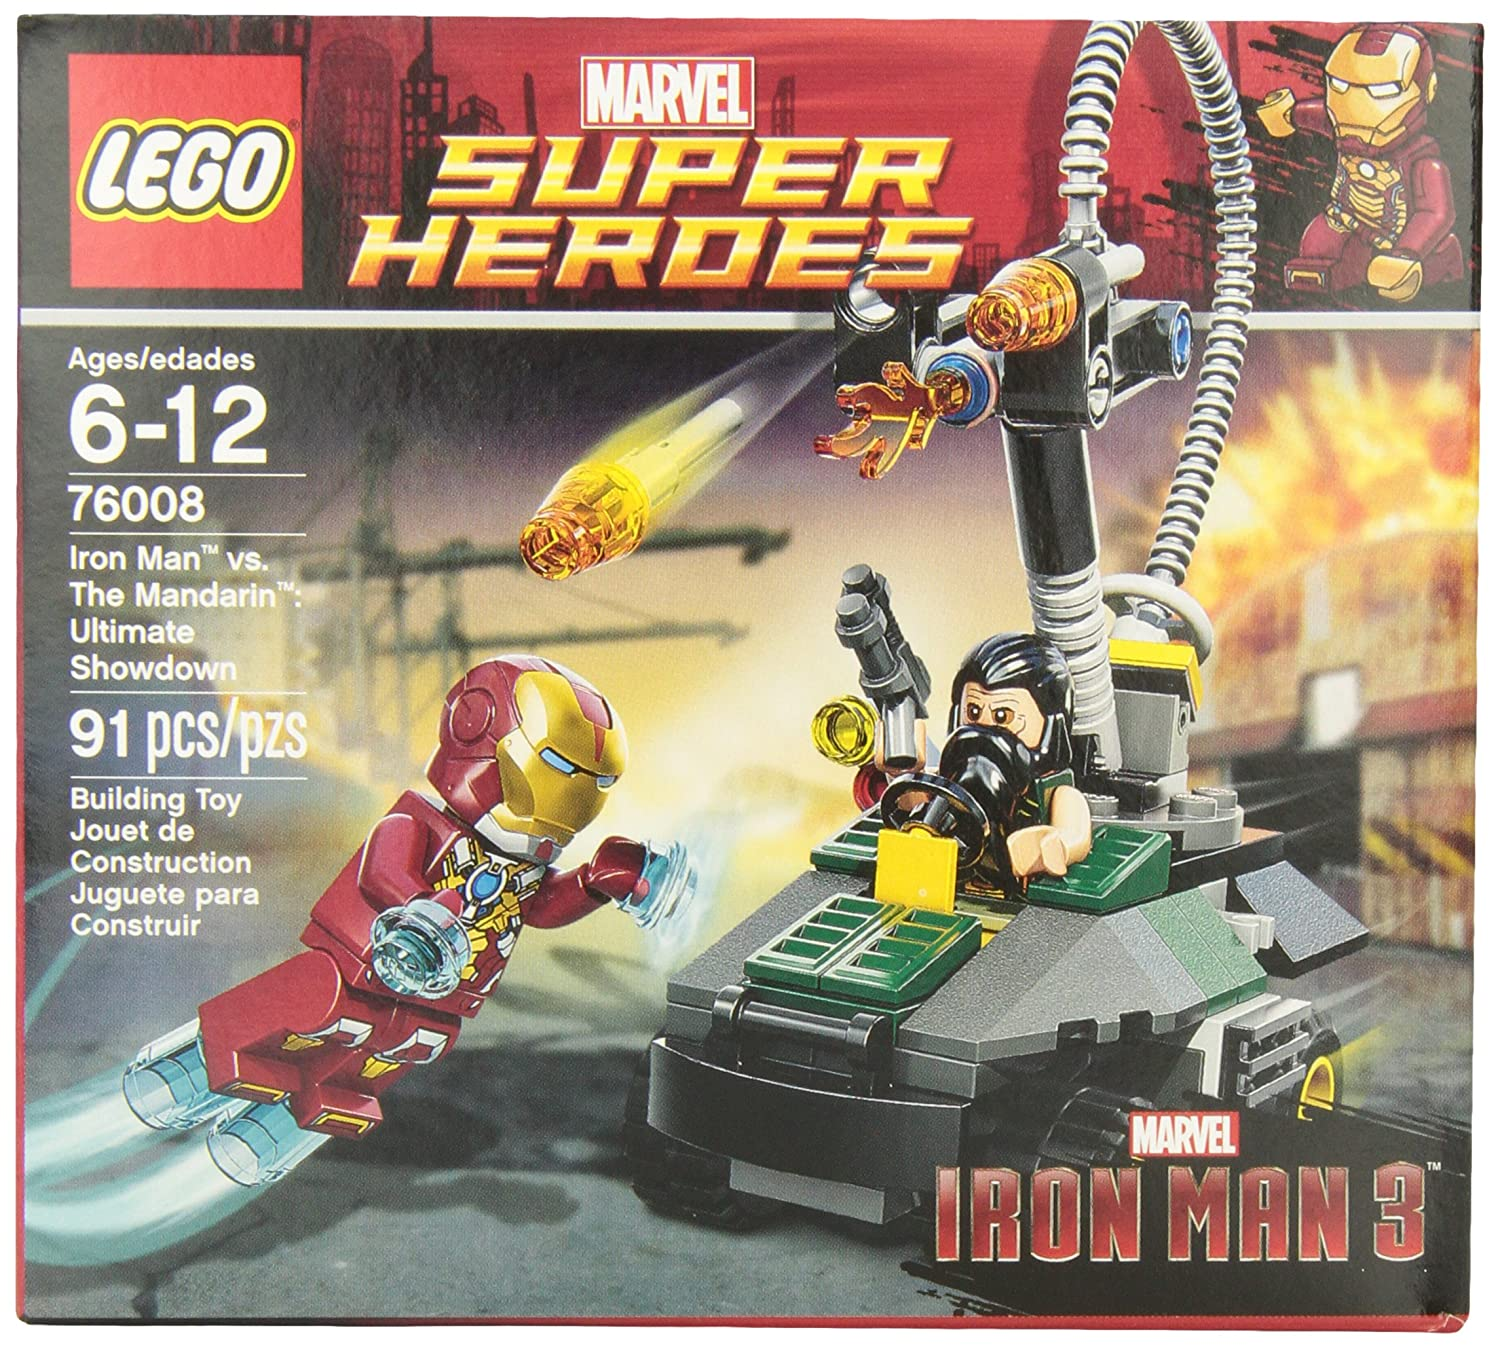 LEGO Super Heroes Iron Man vs. The Mandarin Ultimate Showdown